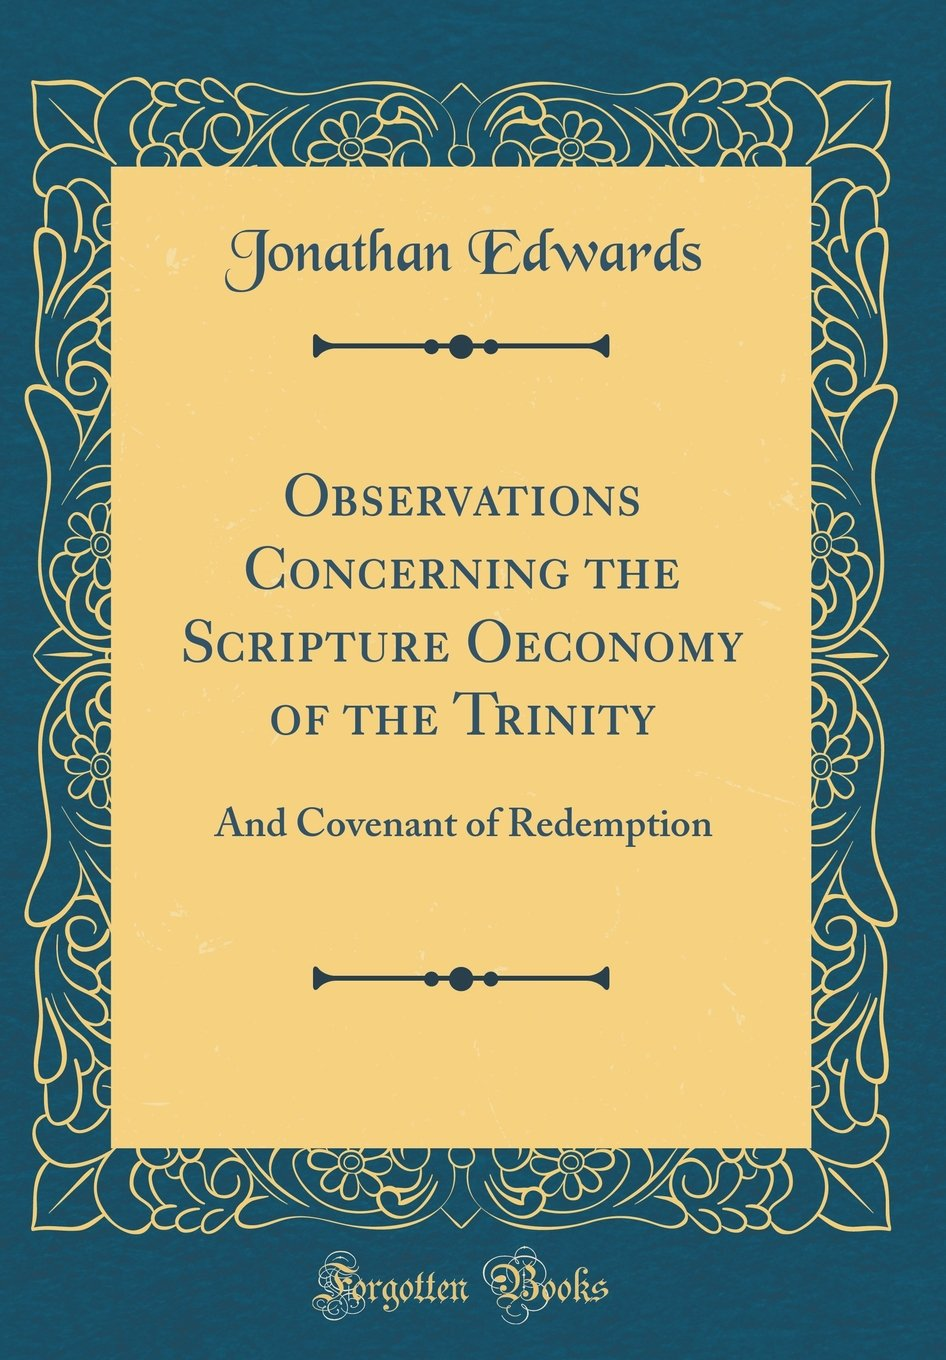 Observations Concerning the Scripture Oeconomy of the Trinity: And Covenant of Redemption (Classic Reprint) PDF